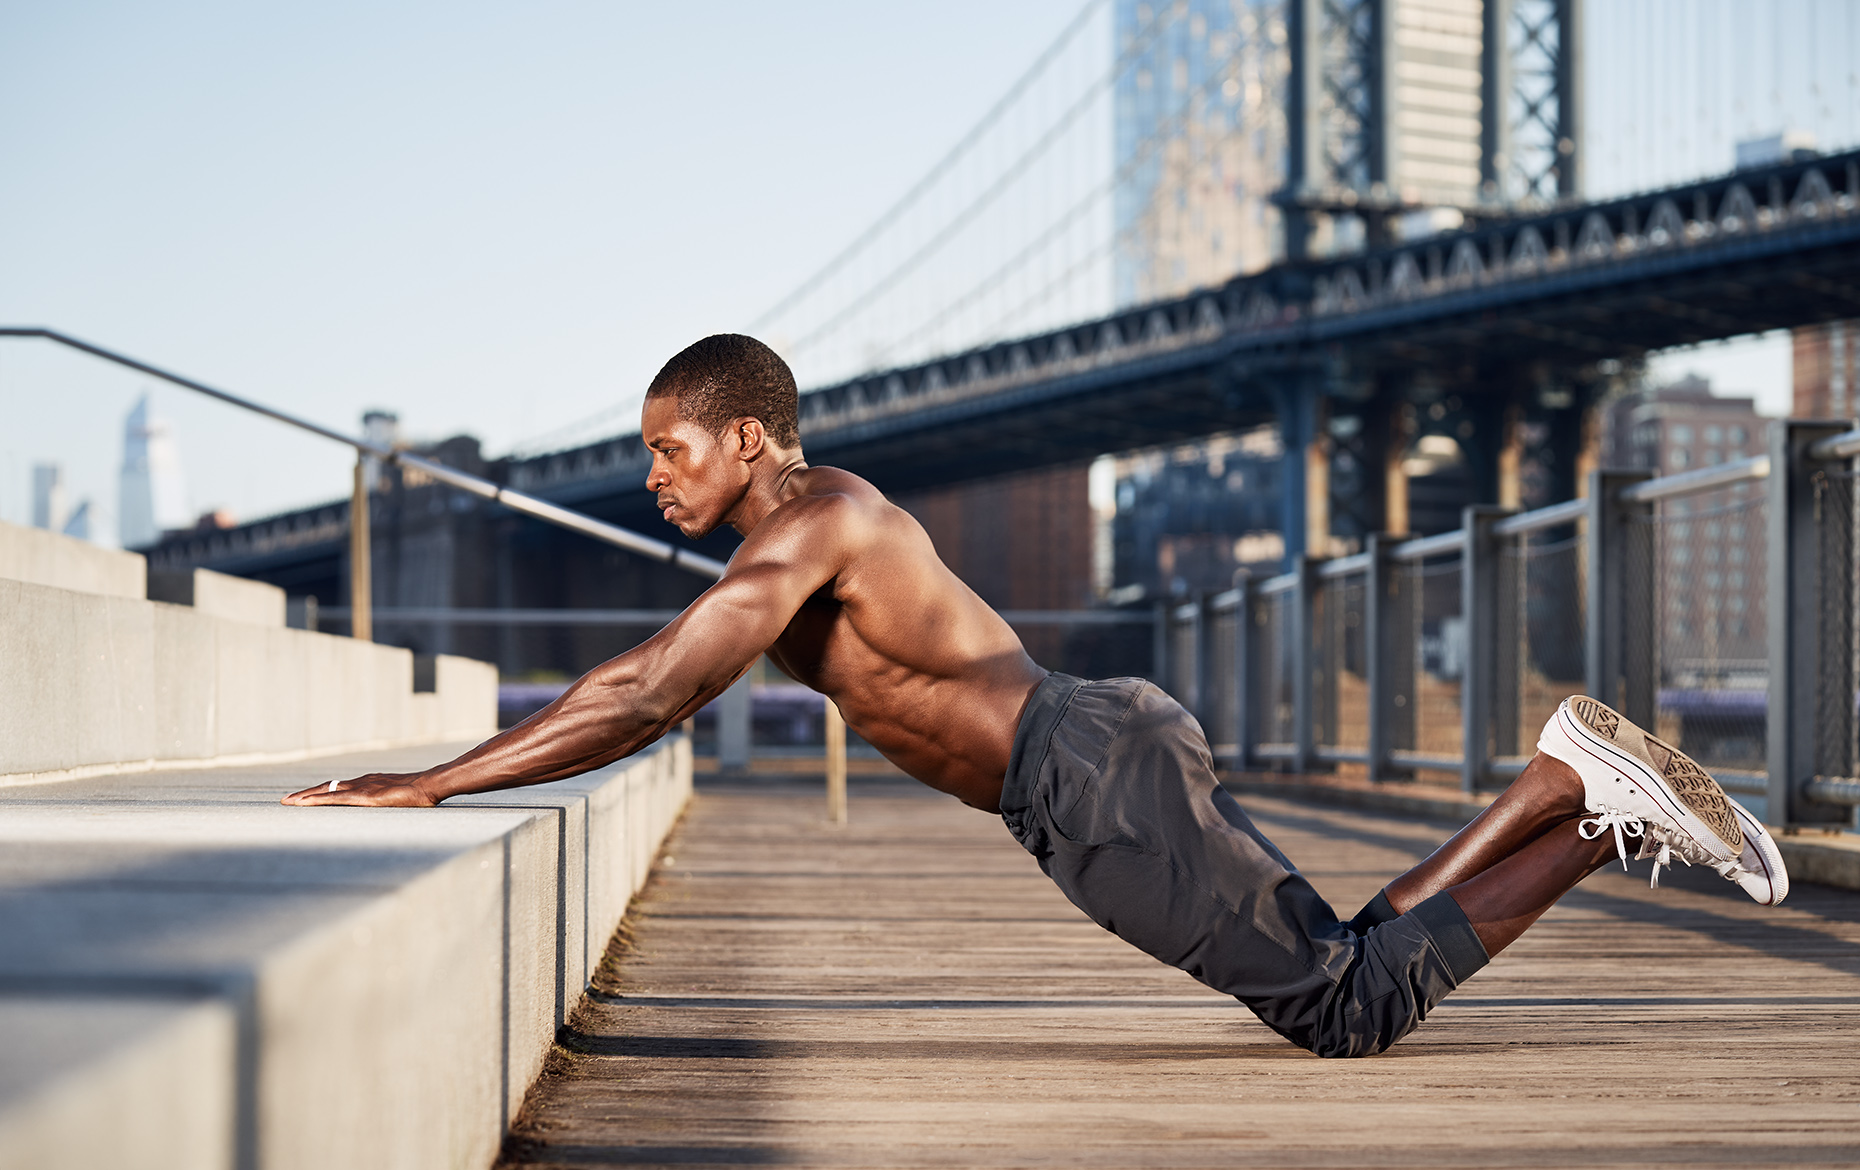 New York Fitness Sports Advertising Photographer